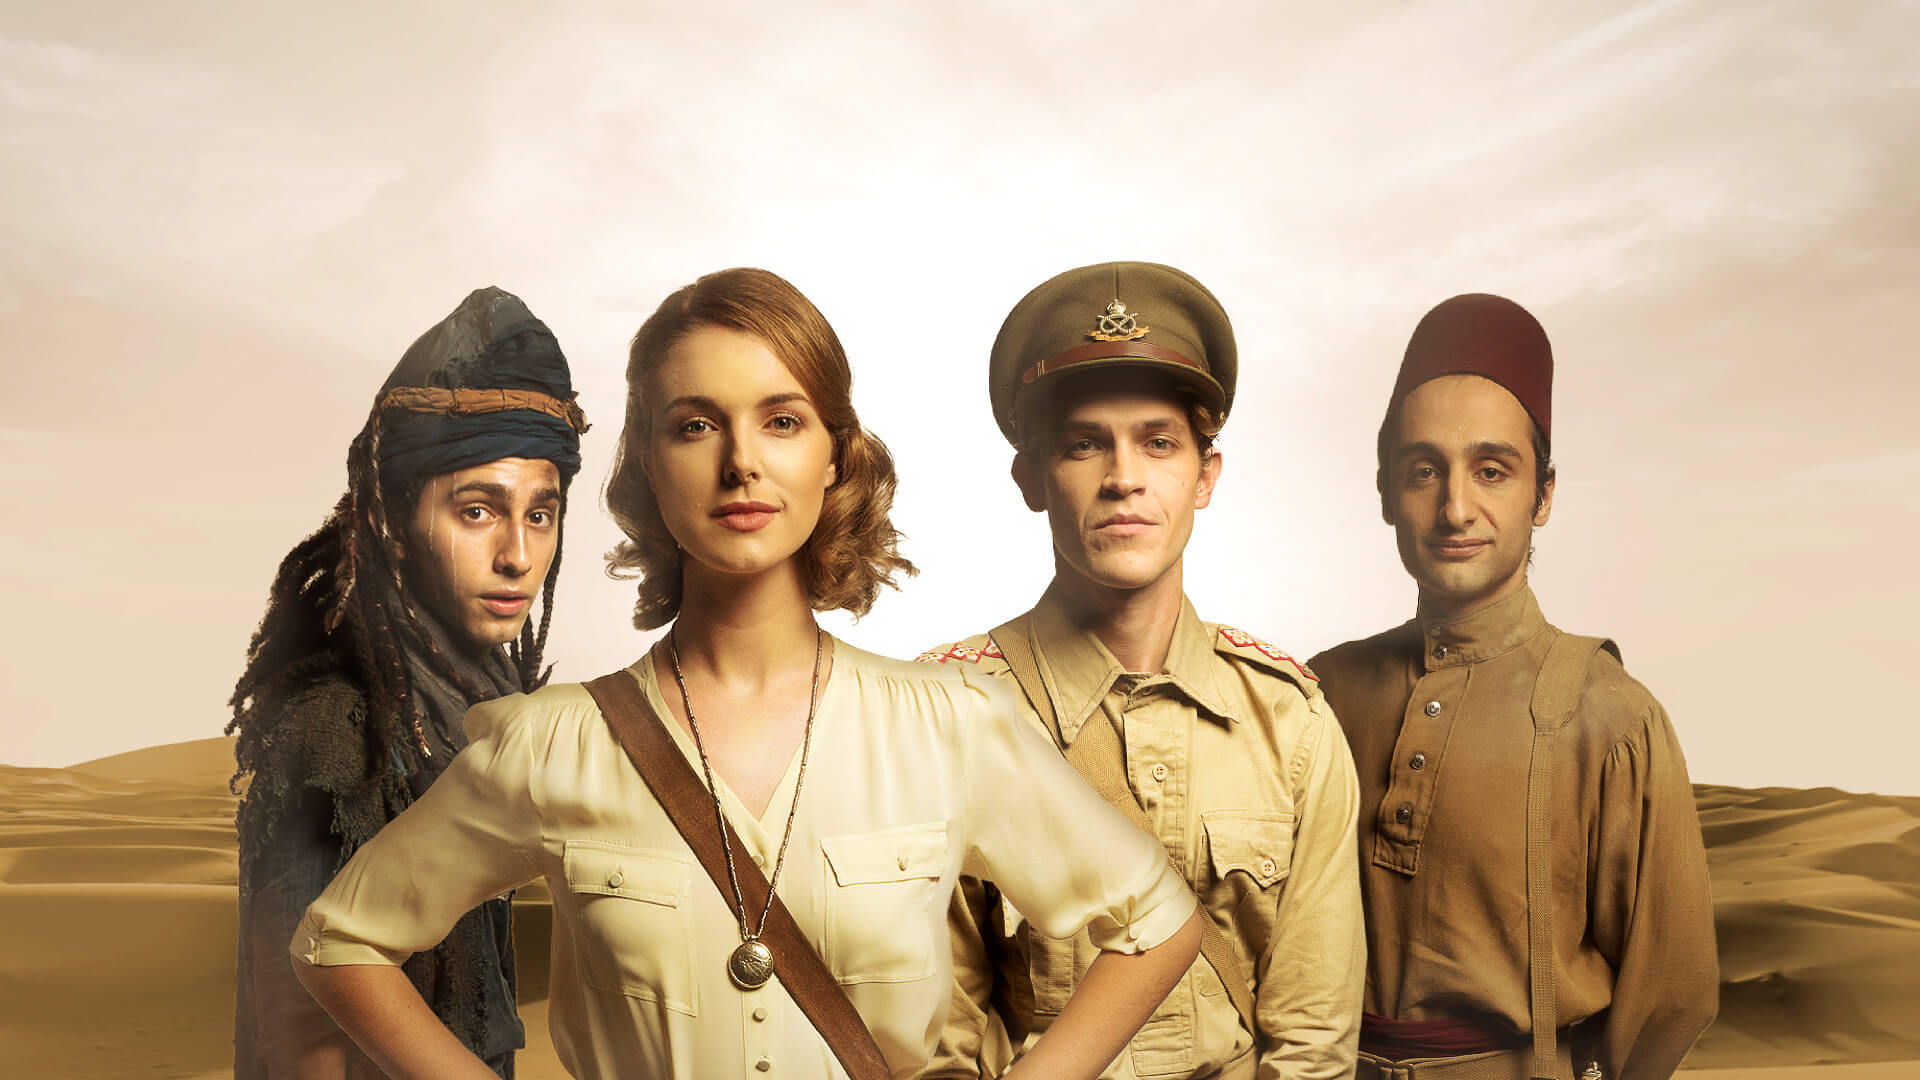 Global distribution lessons from the launch of Stargate Origins